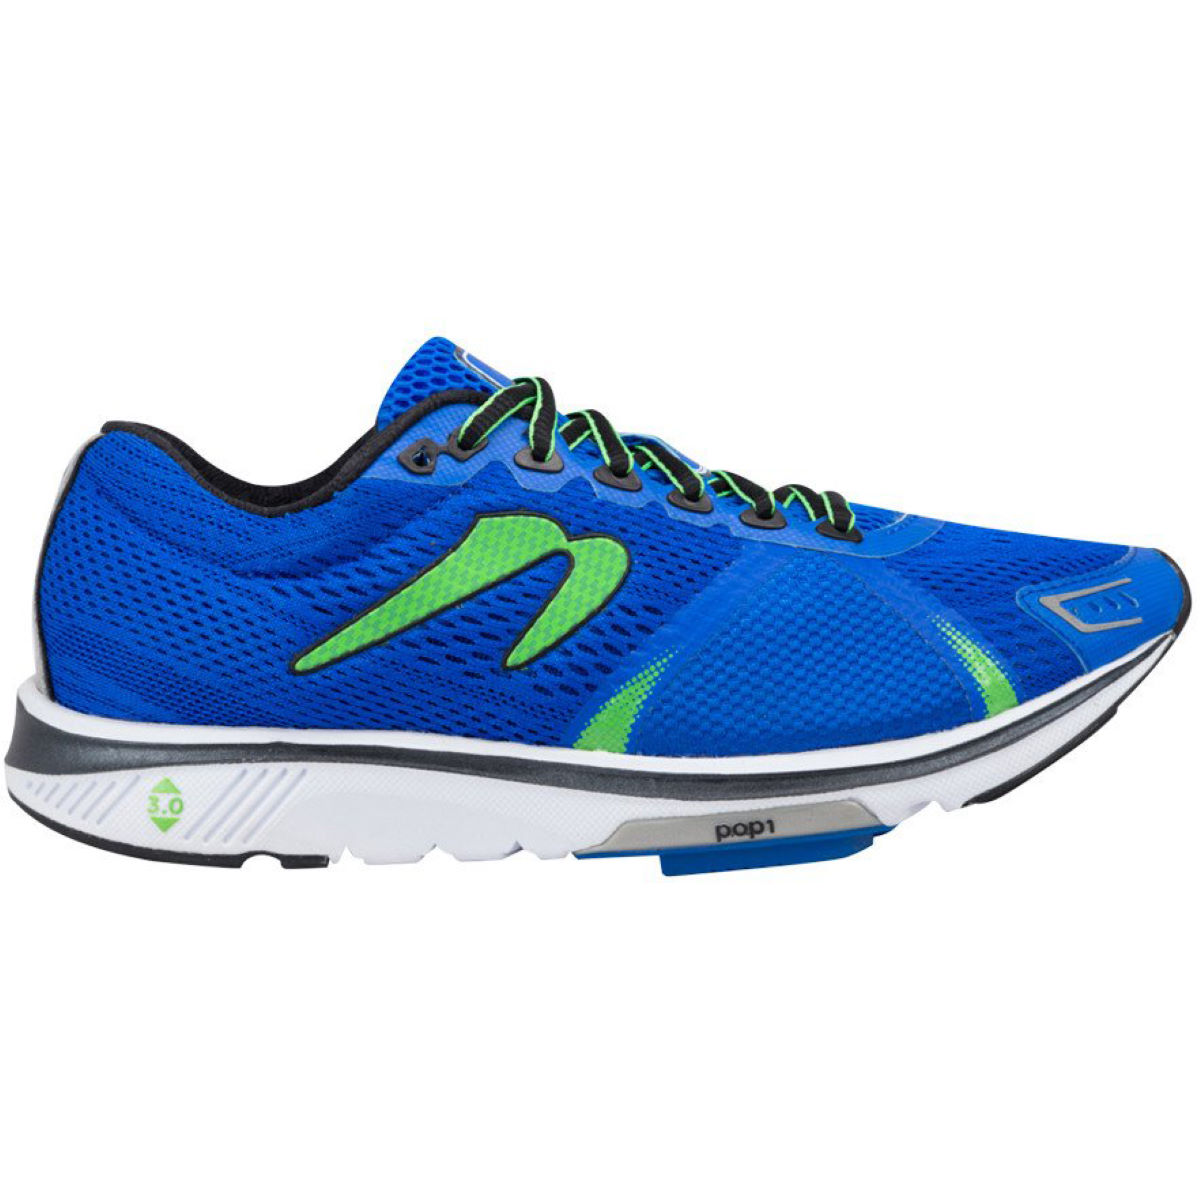 Zapatillas Newton Running Gravity VI - Zapatillas acolchadas